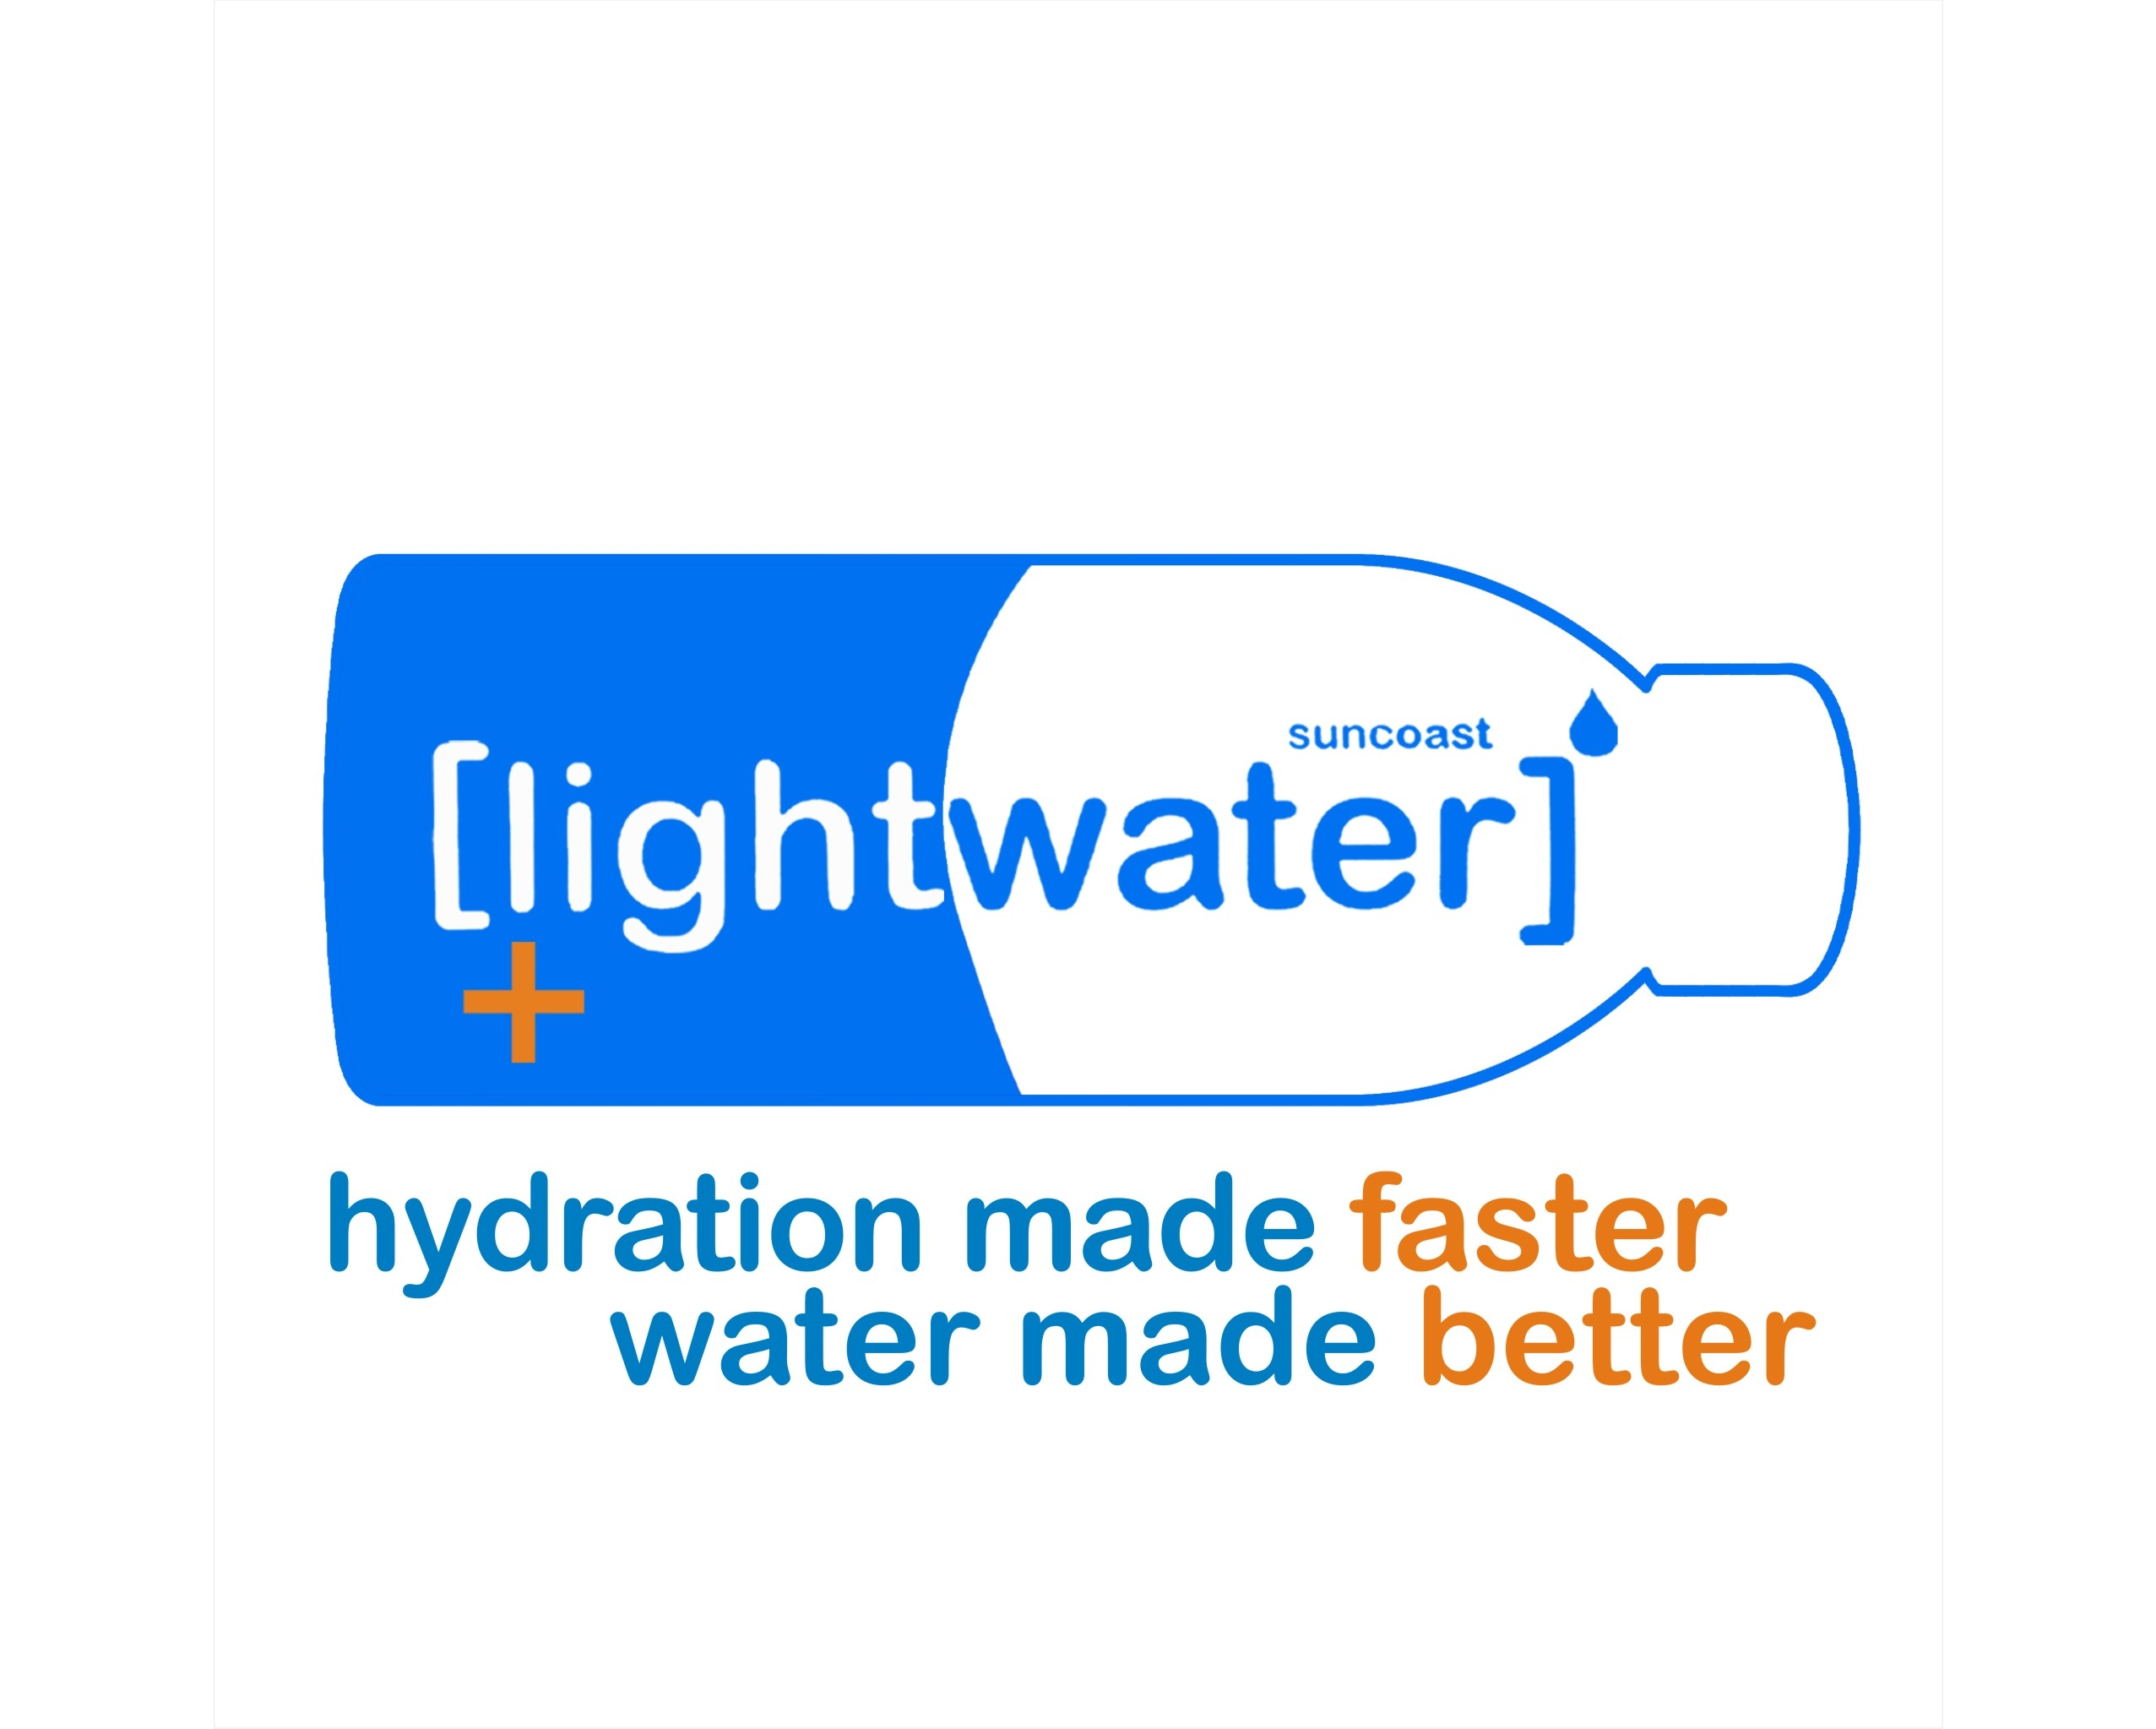 lightwater logo_with text